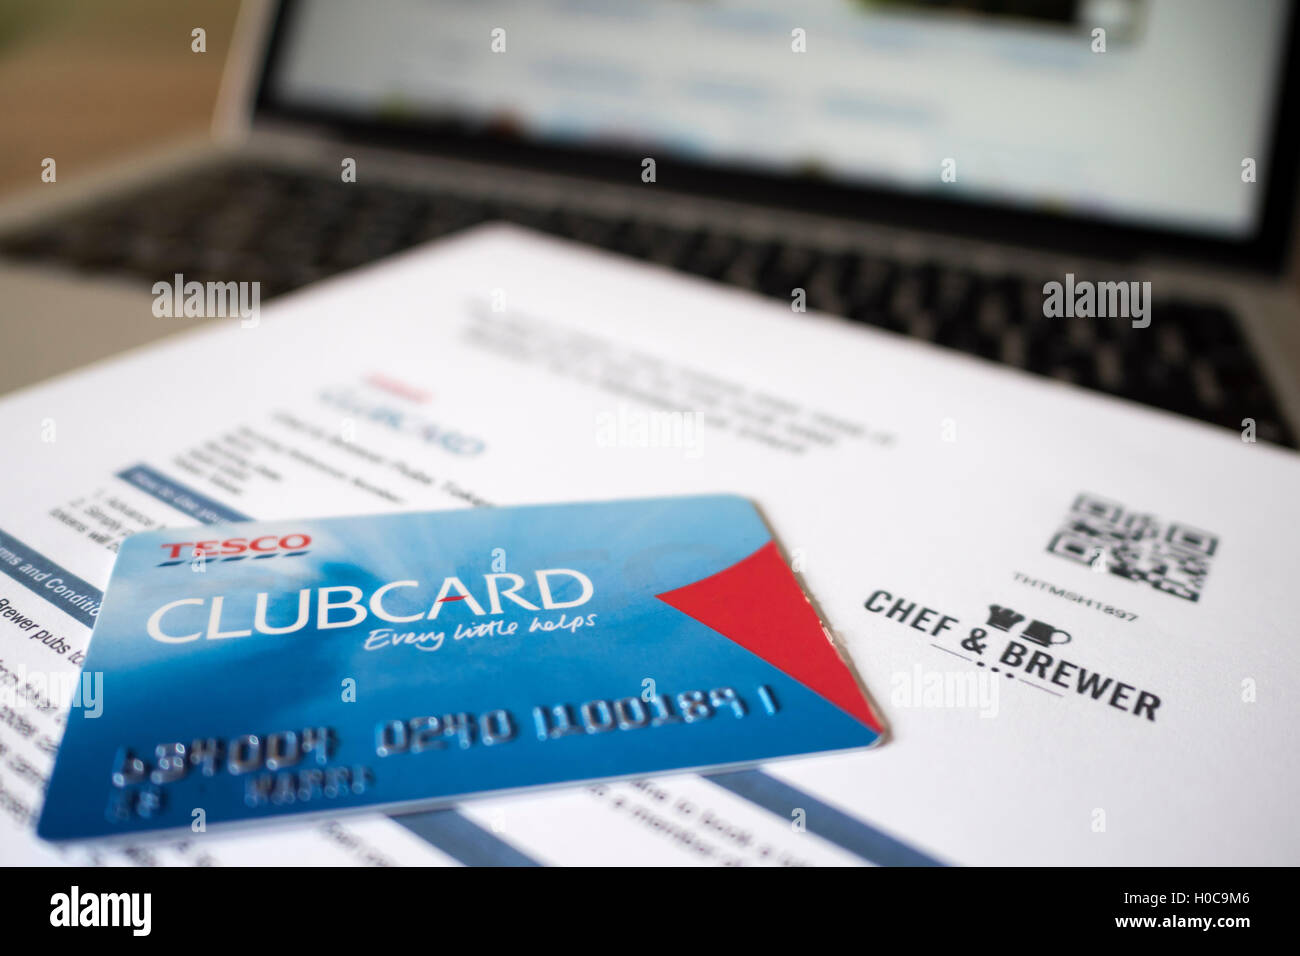 Tesco clubcard stock photos tesco clubcard stock images alamy tesco rewards stock image reheart